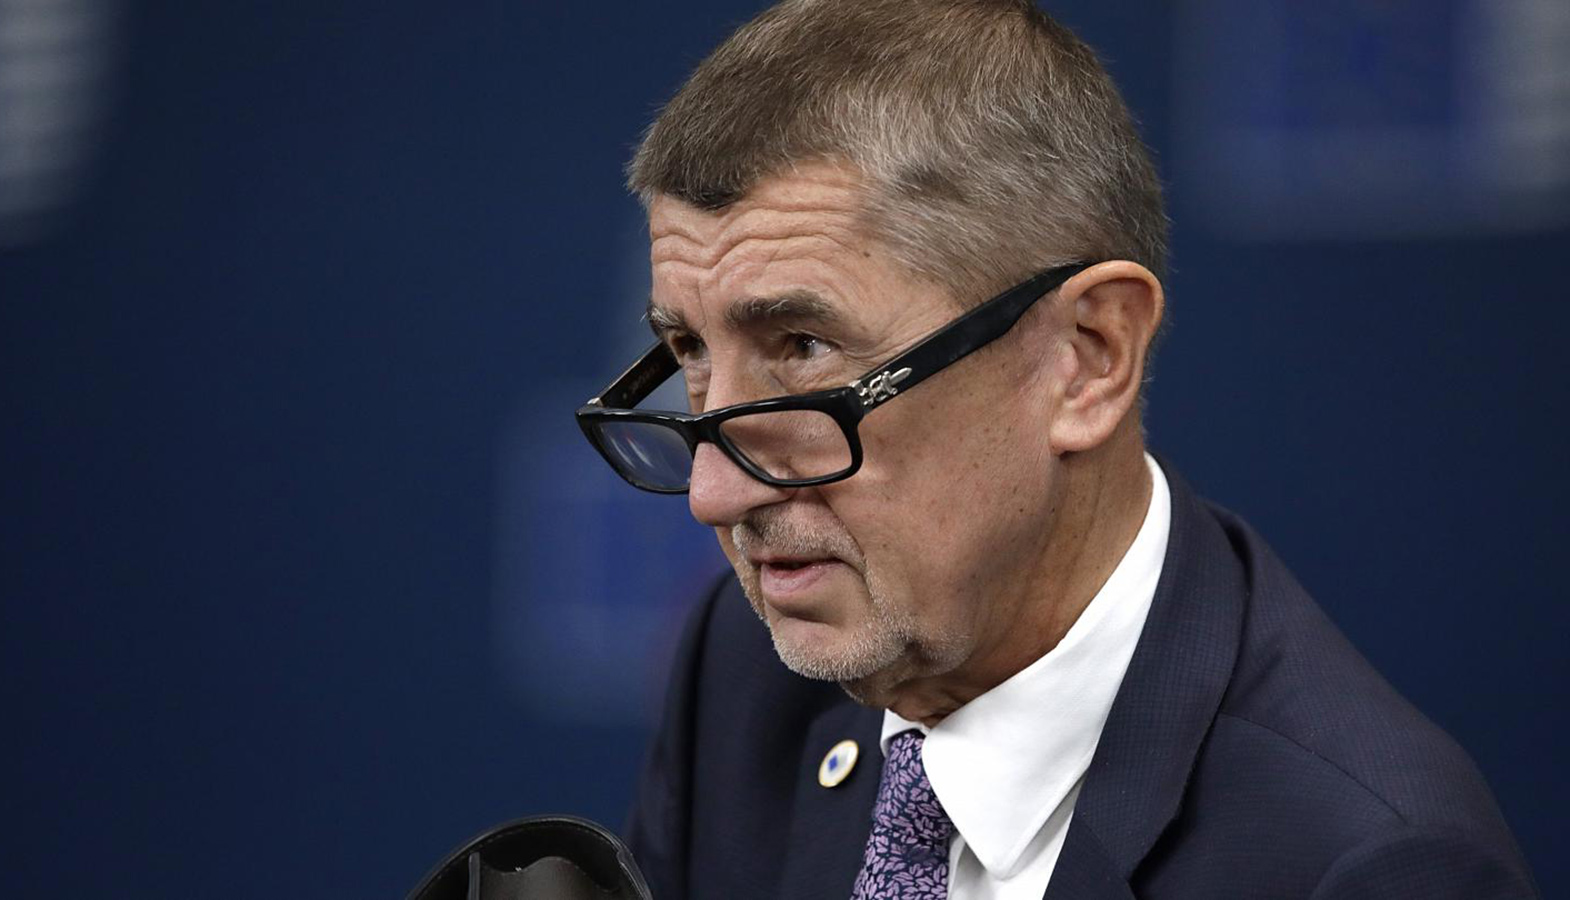 The Czech Republic Will Not Sign An Agreement With The United States On The Development Of Nuclear Energy